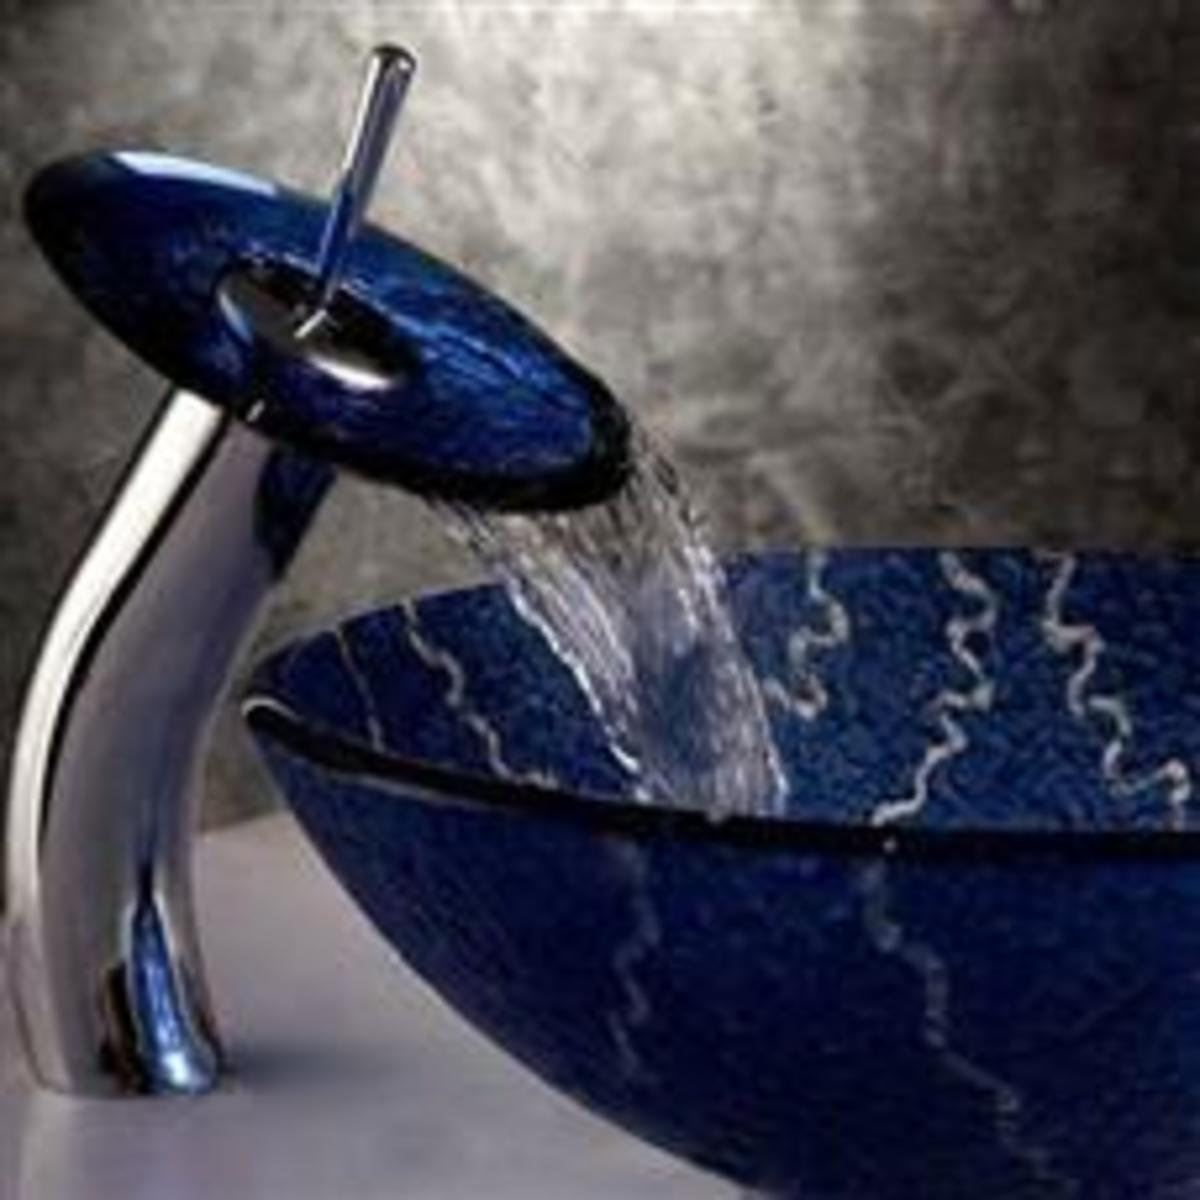 Waterfall Faucet in Cobalt Blue - luxury basin sink and faucet